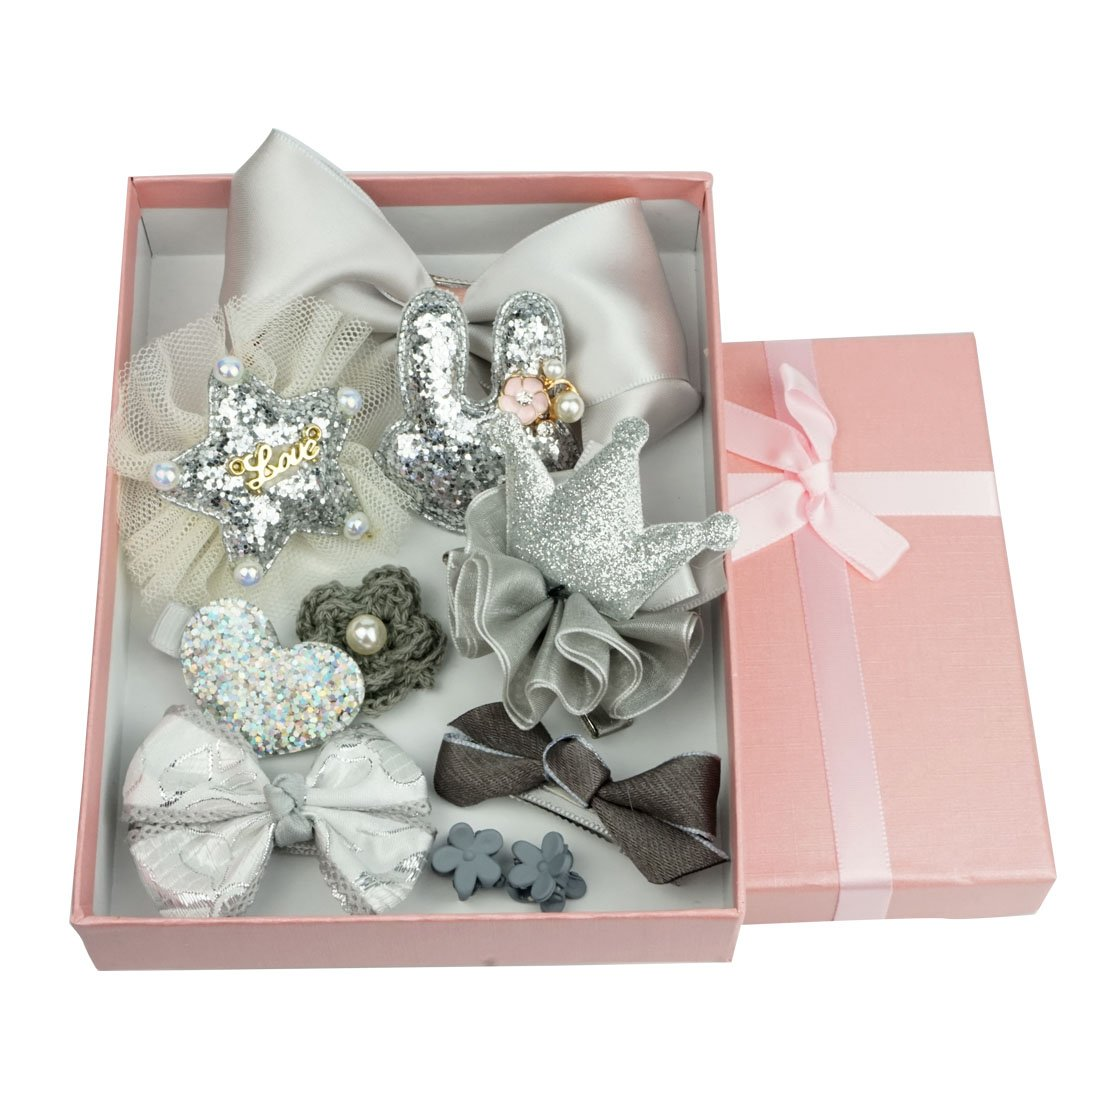 Star Picker Baby Girls 10pcs Hair Clips Bows Barrettes Accessories Gift Box Set, Silver Grey